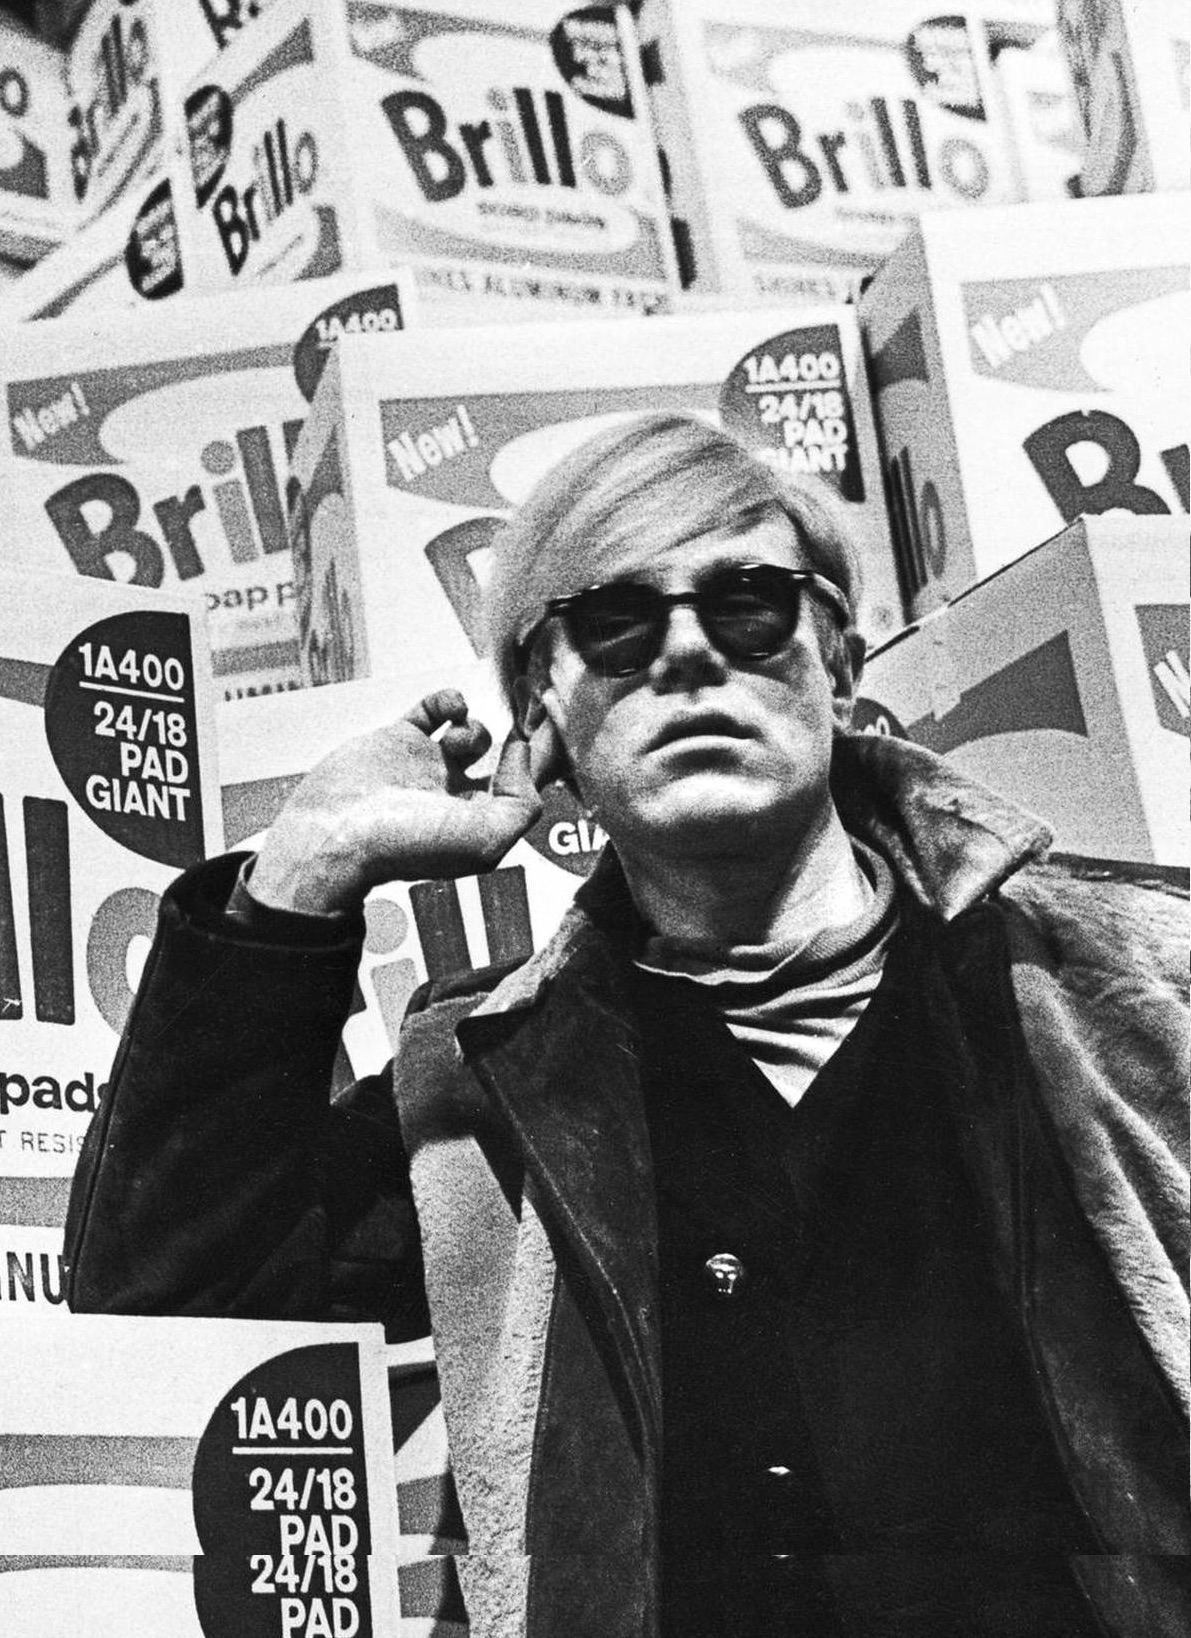 Andy warhol Crisco disco. Photograph of the American artist Andy Warhol in Moderna Museet, Stockholm, before the opening of his retrospective exhibition. Brillo boxes in the background.